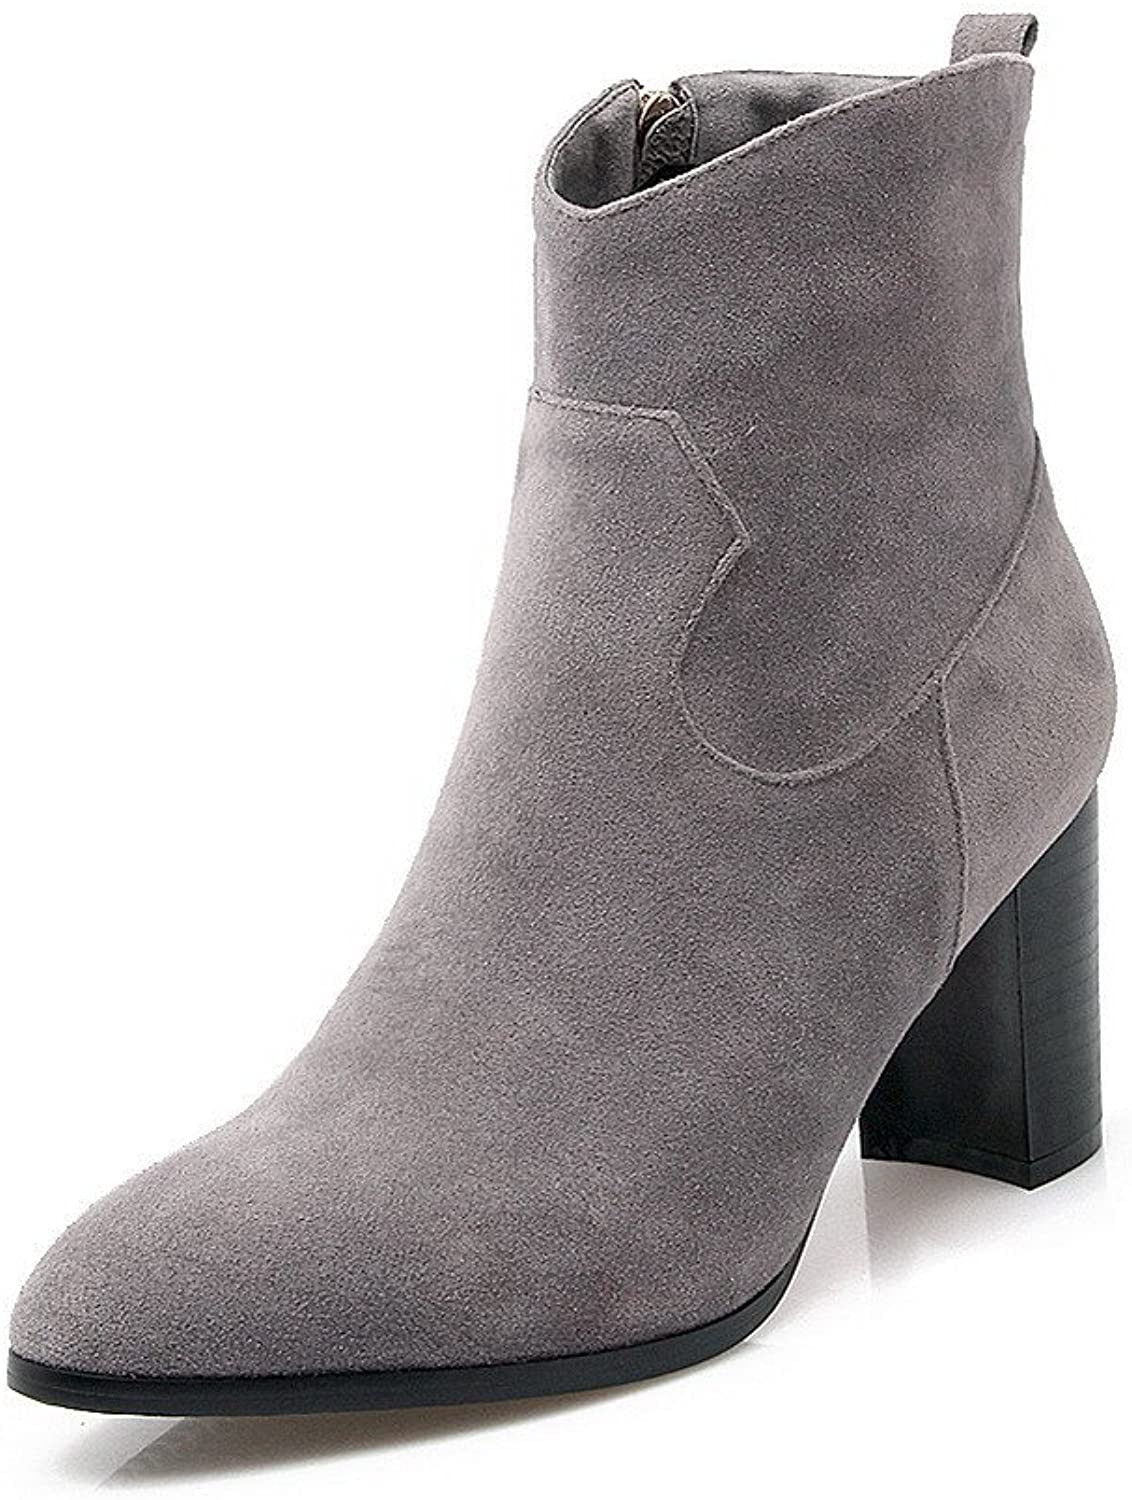 WeiPoot Women's High Heels Low-Top Solid Zipper Boots